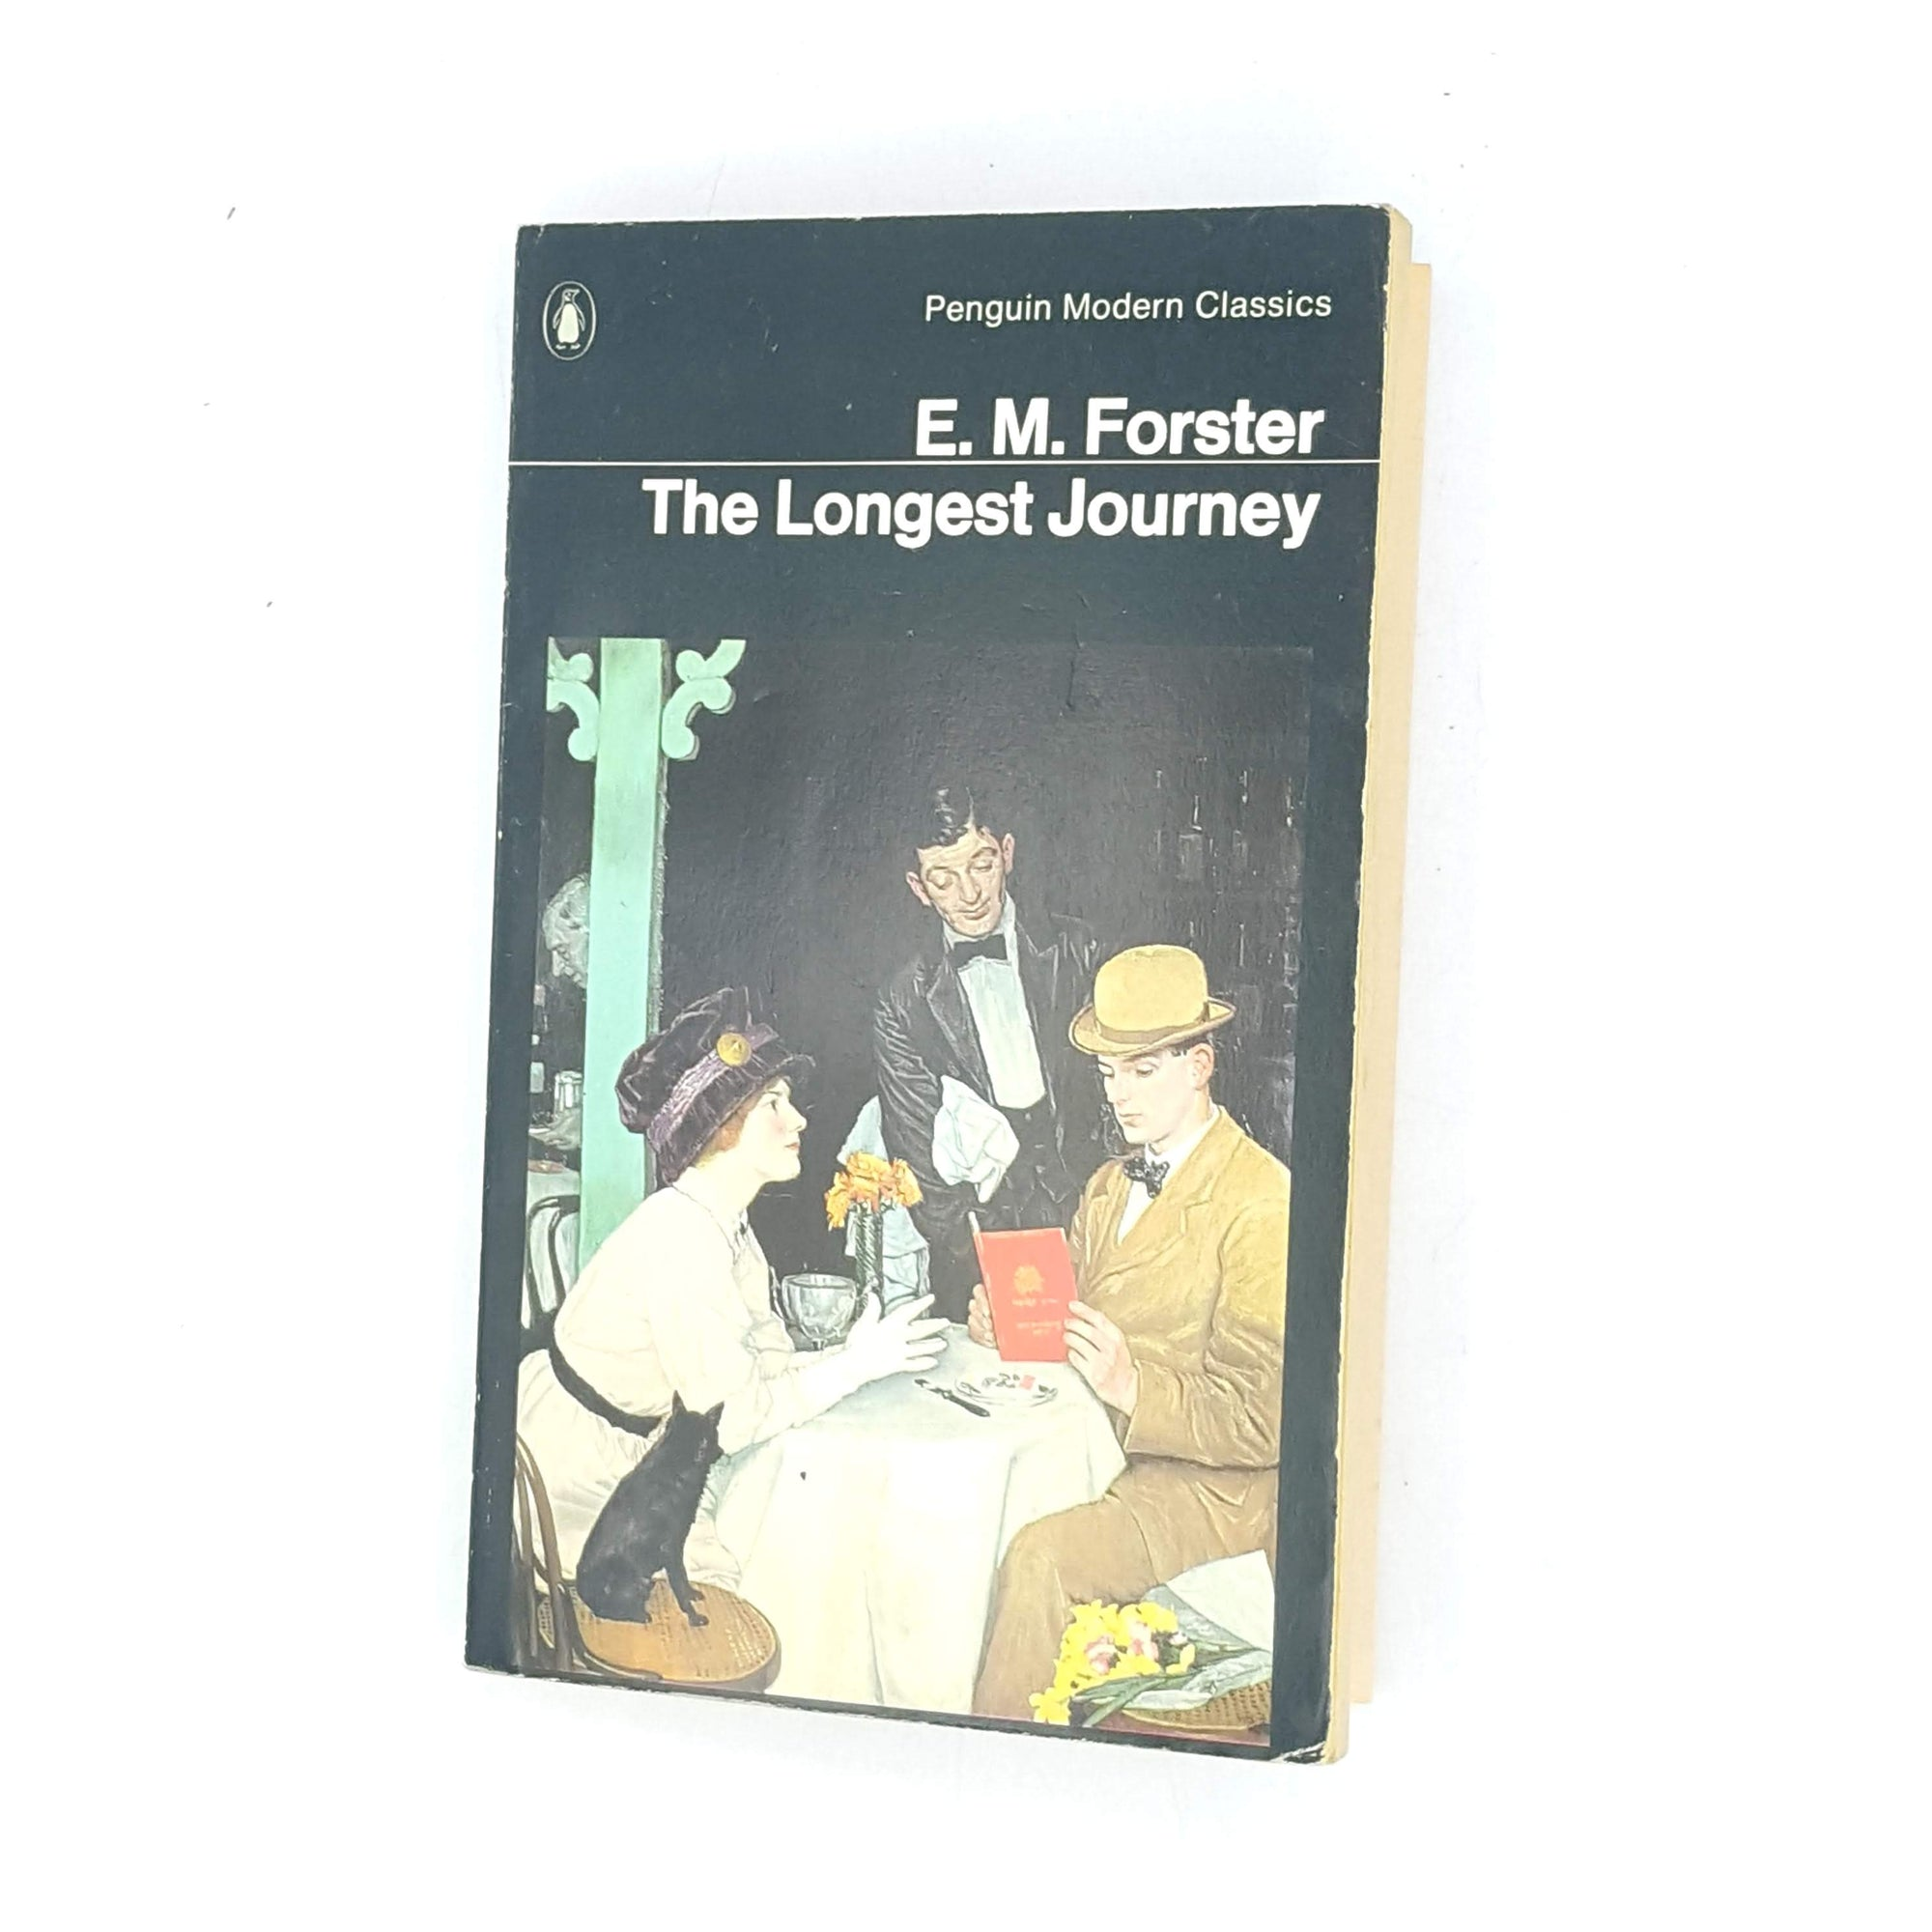 the-longest-journey-old-decorative-patterned-vintage-1973-classic-em-forster-thrift-country-house-library-antique-modern-classics-penguin-books-